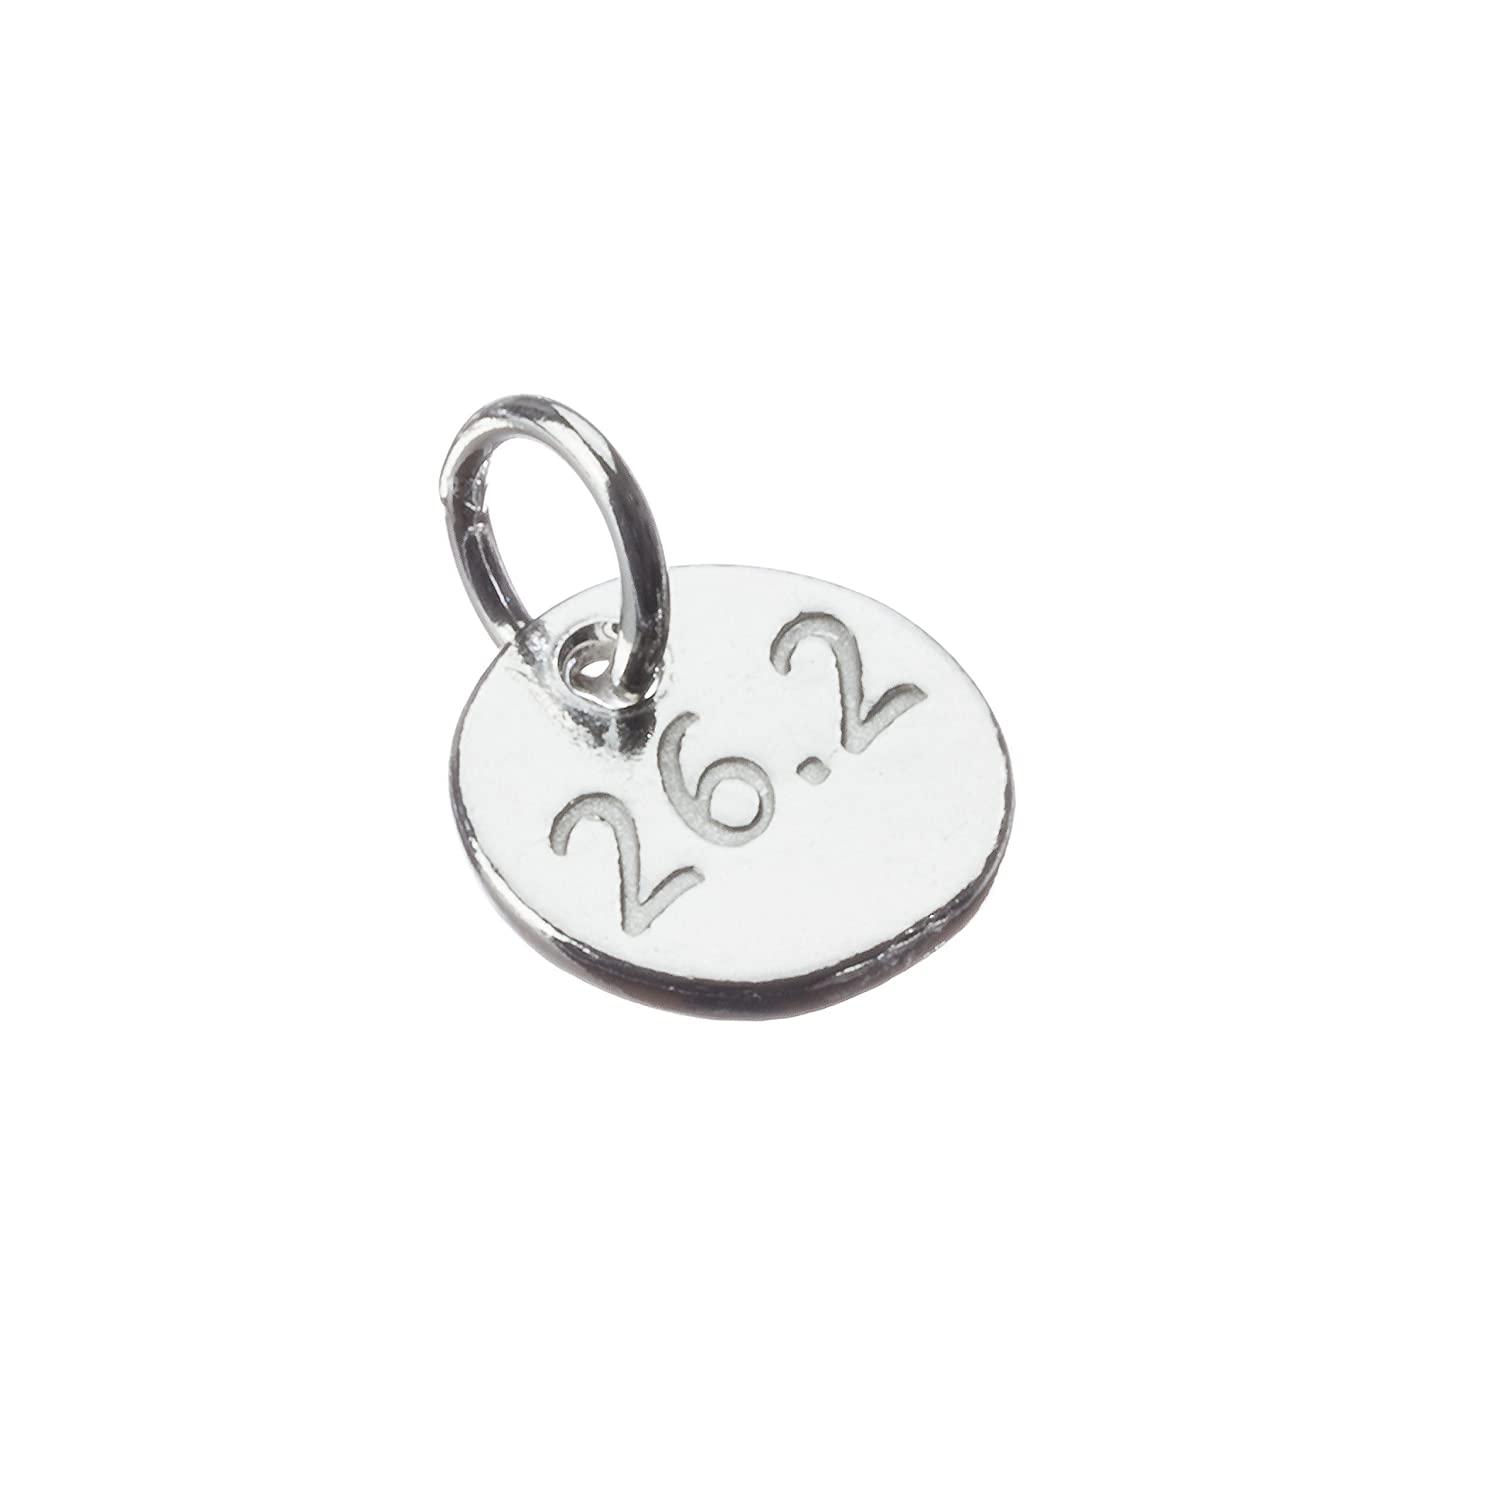 Running Jewelry, One TINY 26.2 sterling silver running charm.